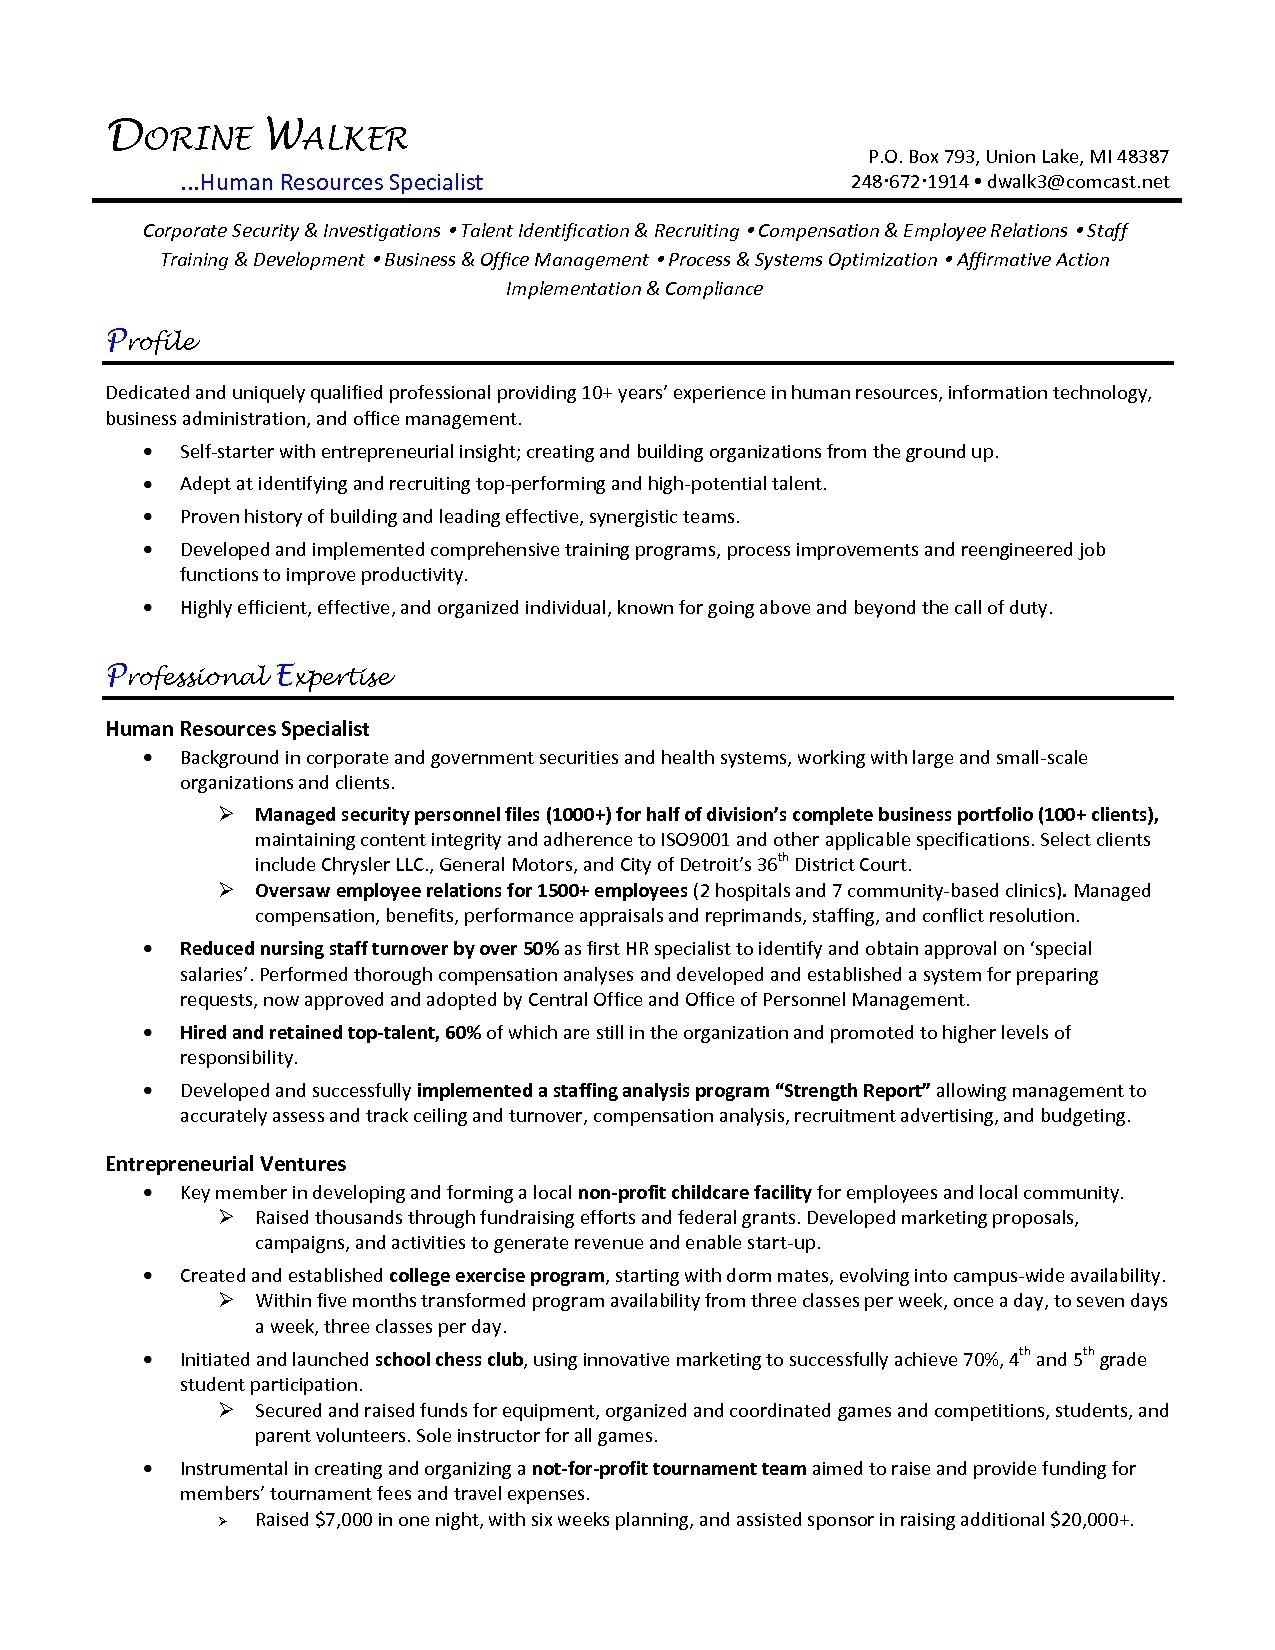 80 Great Payroll Specialist Resume with Pictures